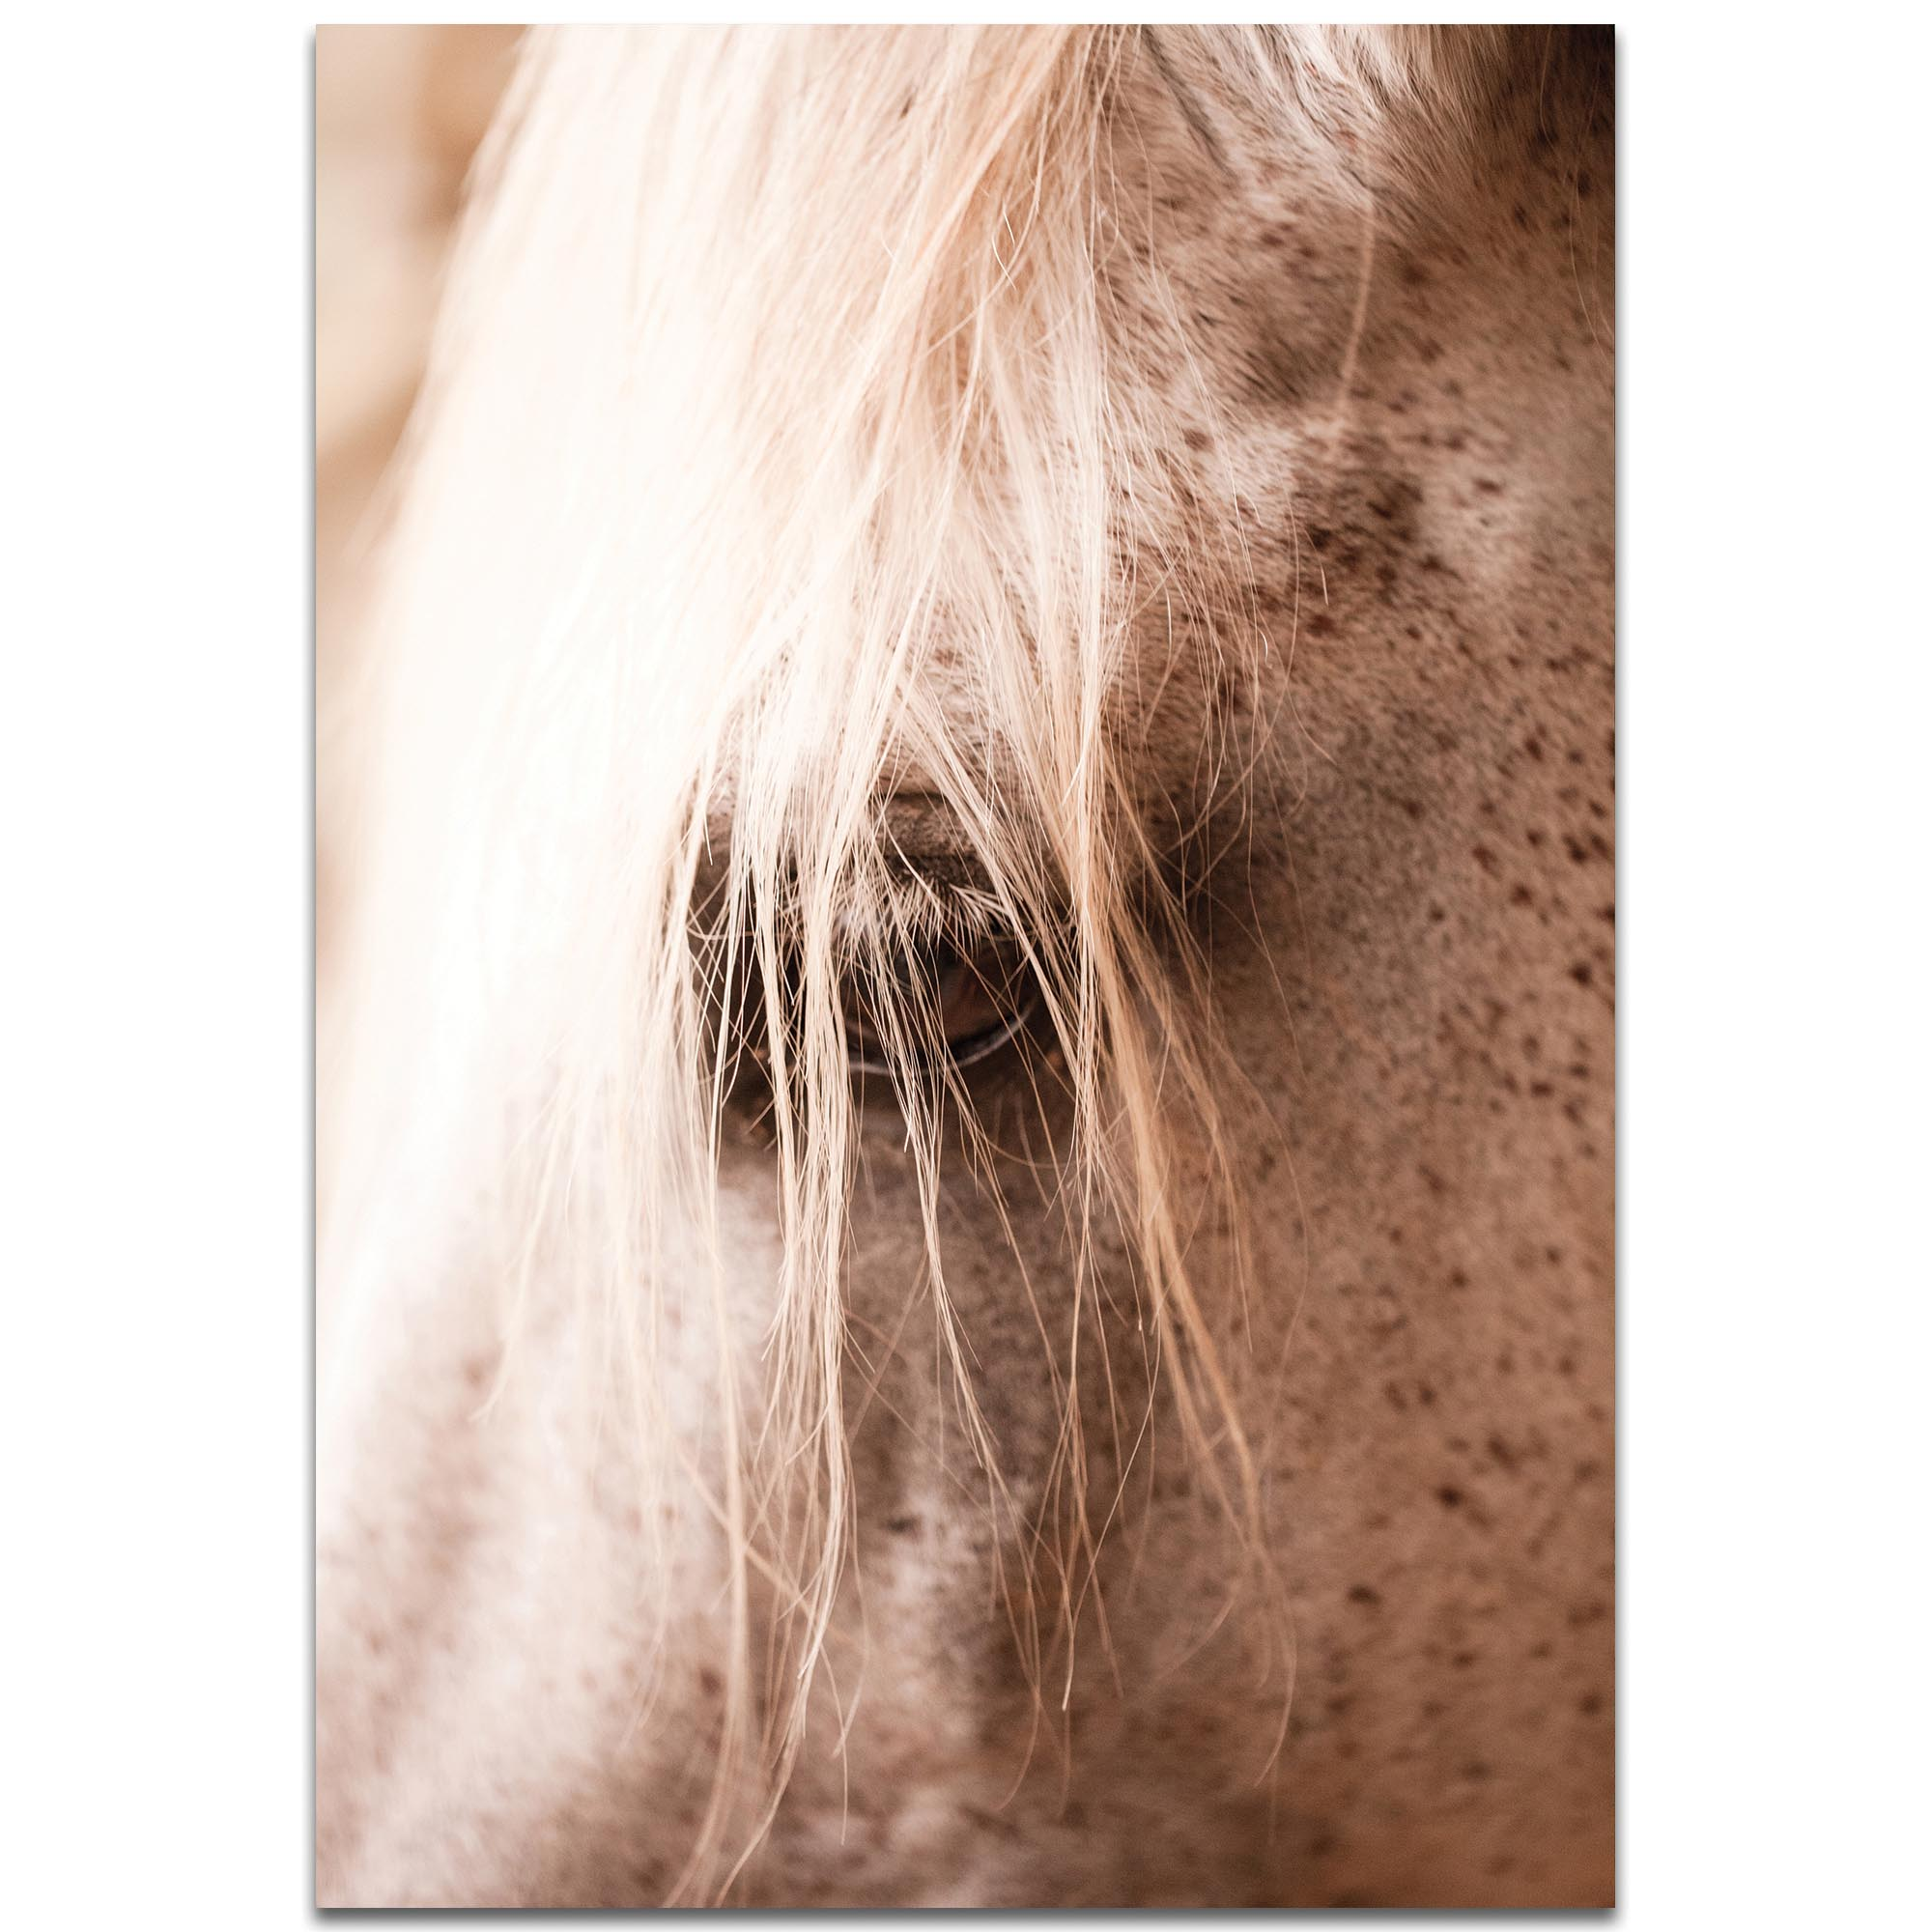 Contemporary Wall Art 'Horse Eye' - Horses Decor on Metal or Plexiglass